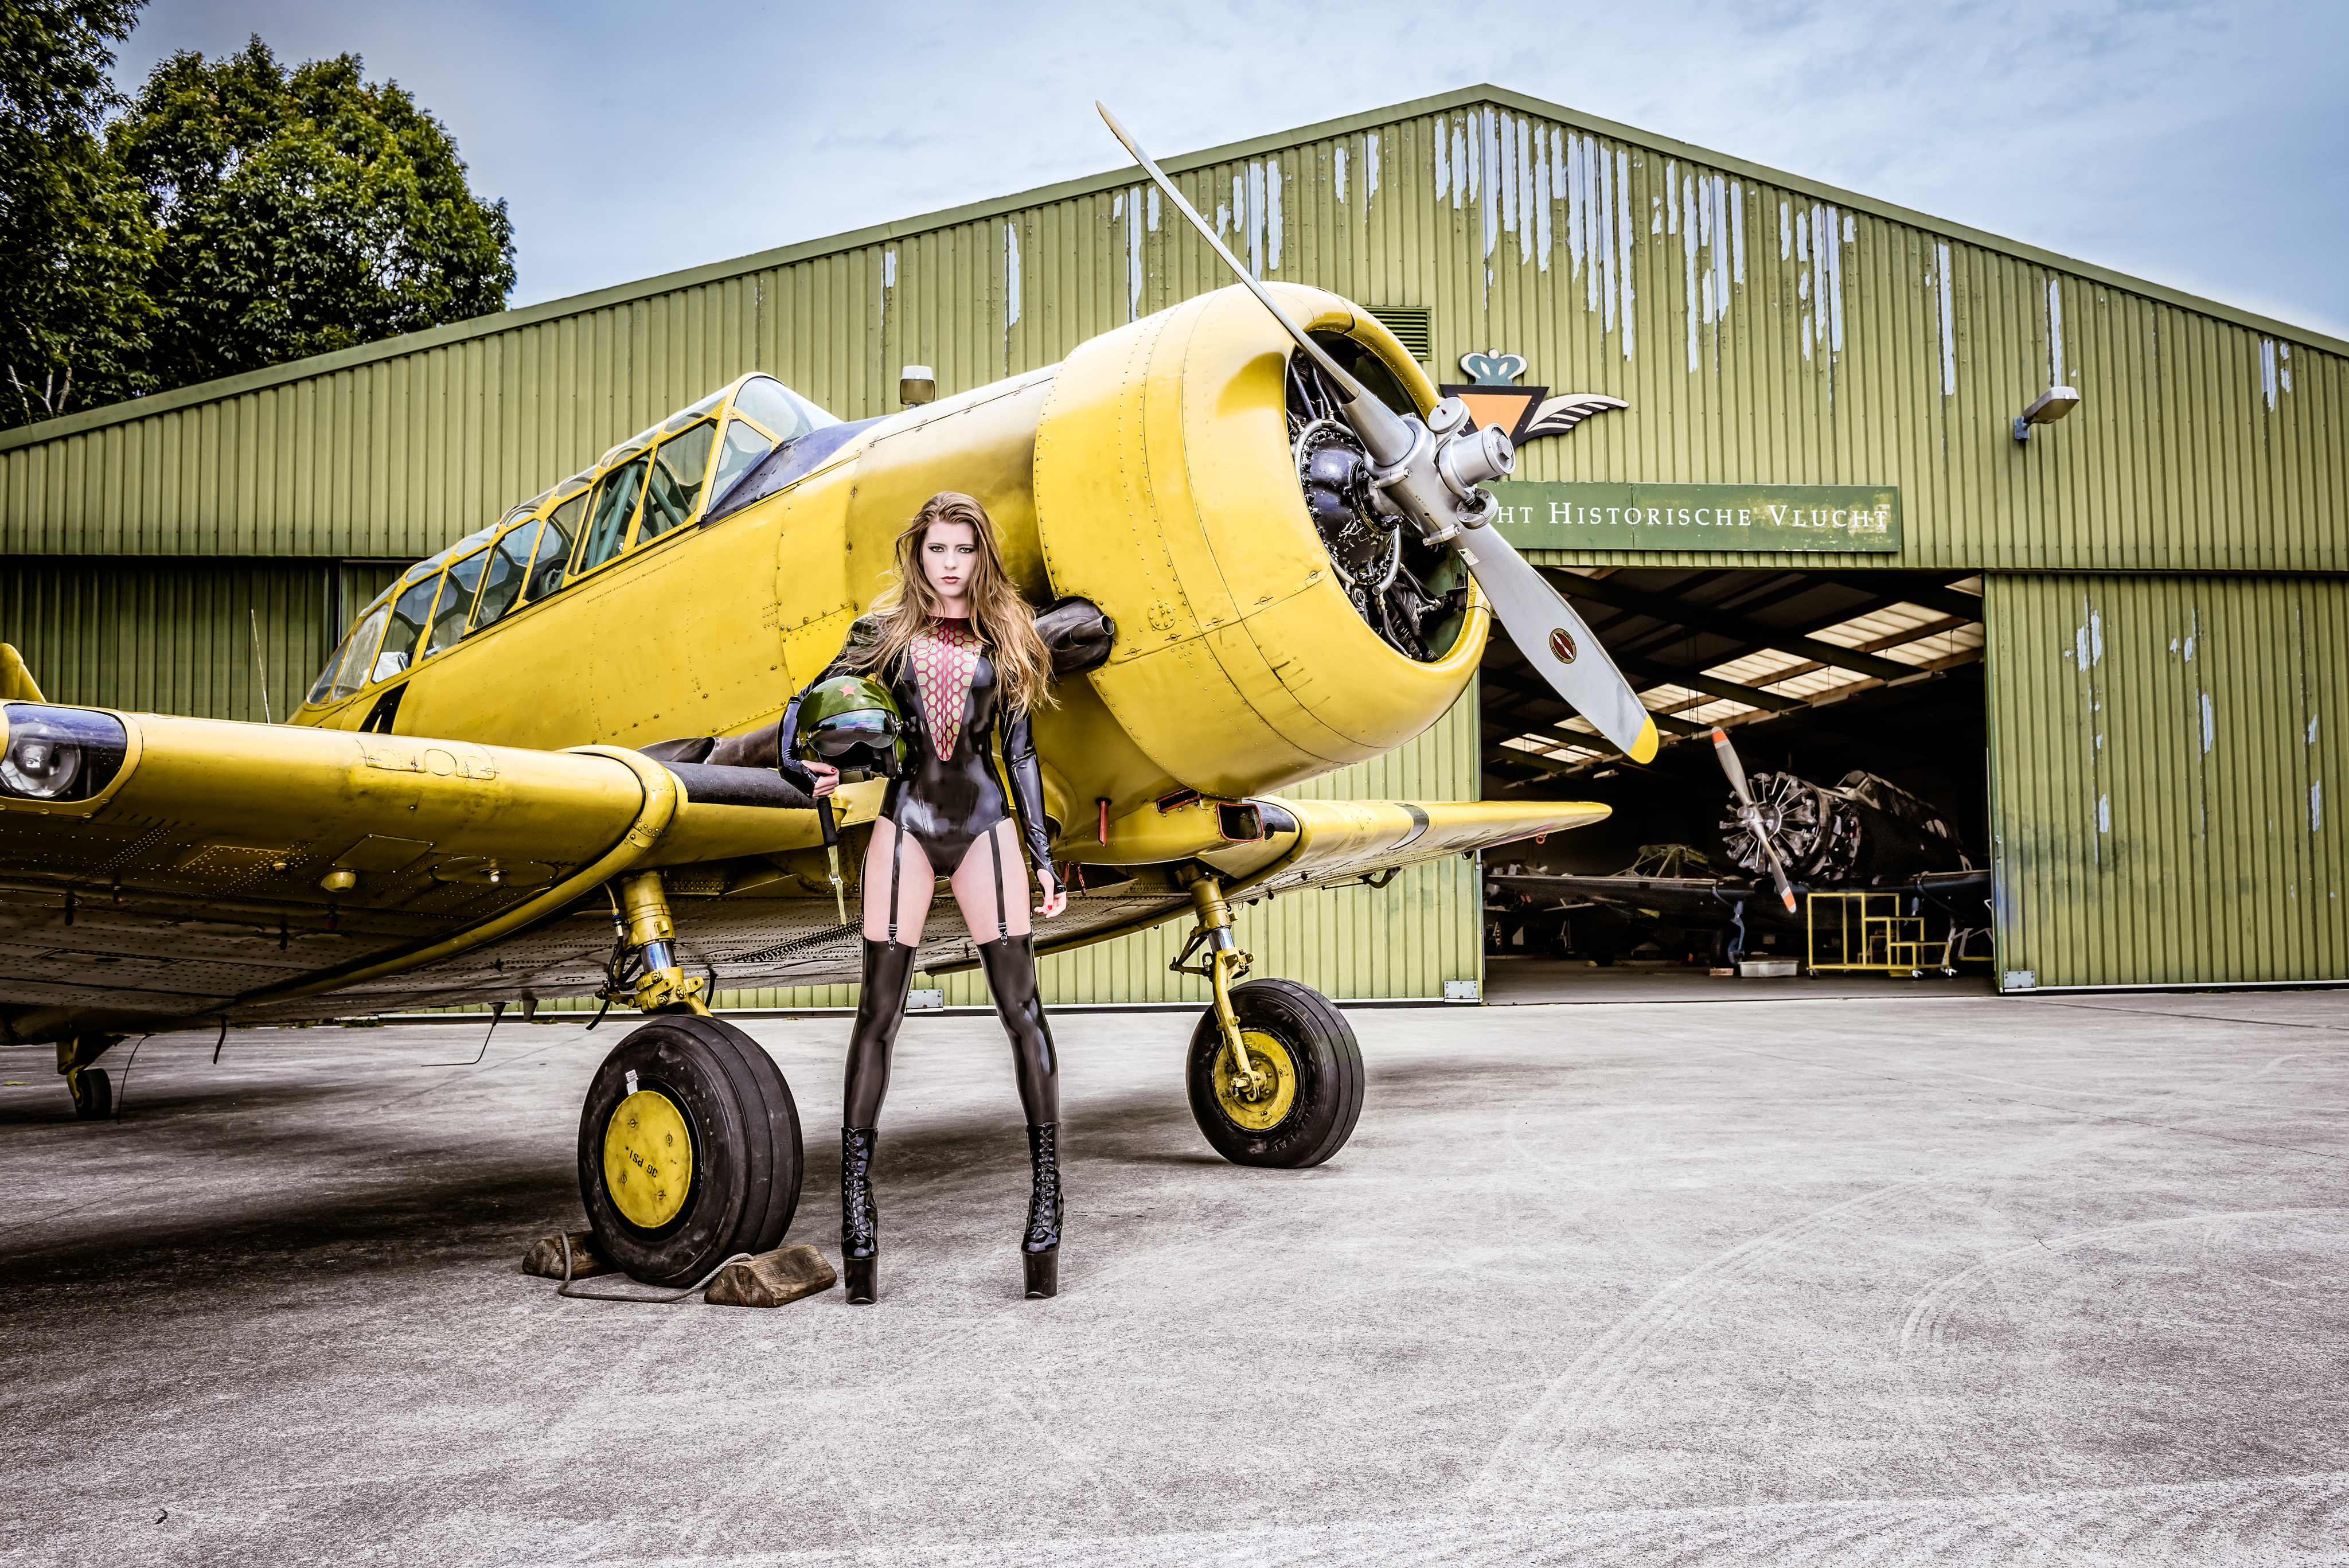 Airplanes-&-babes-02-02